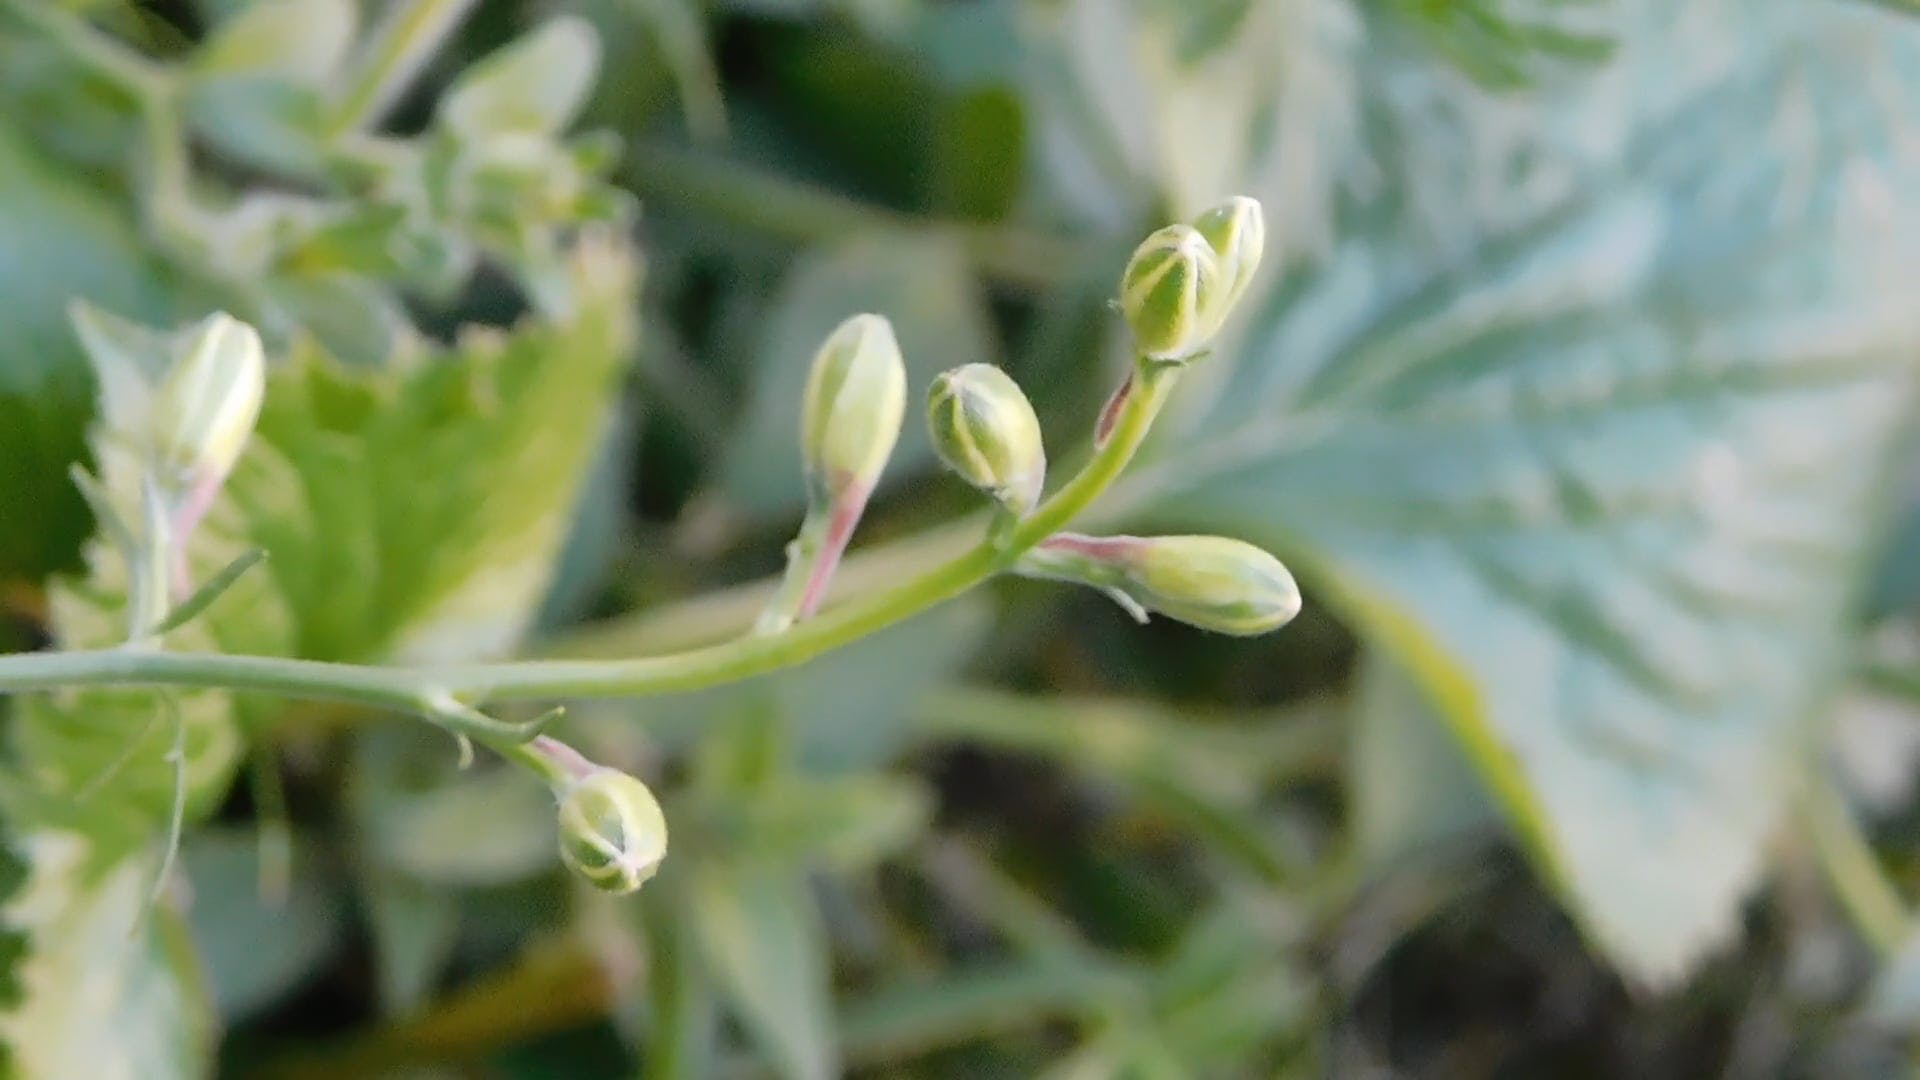 Tiny Flower Buds